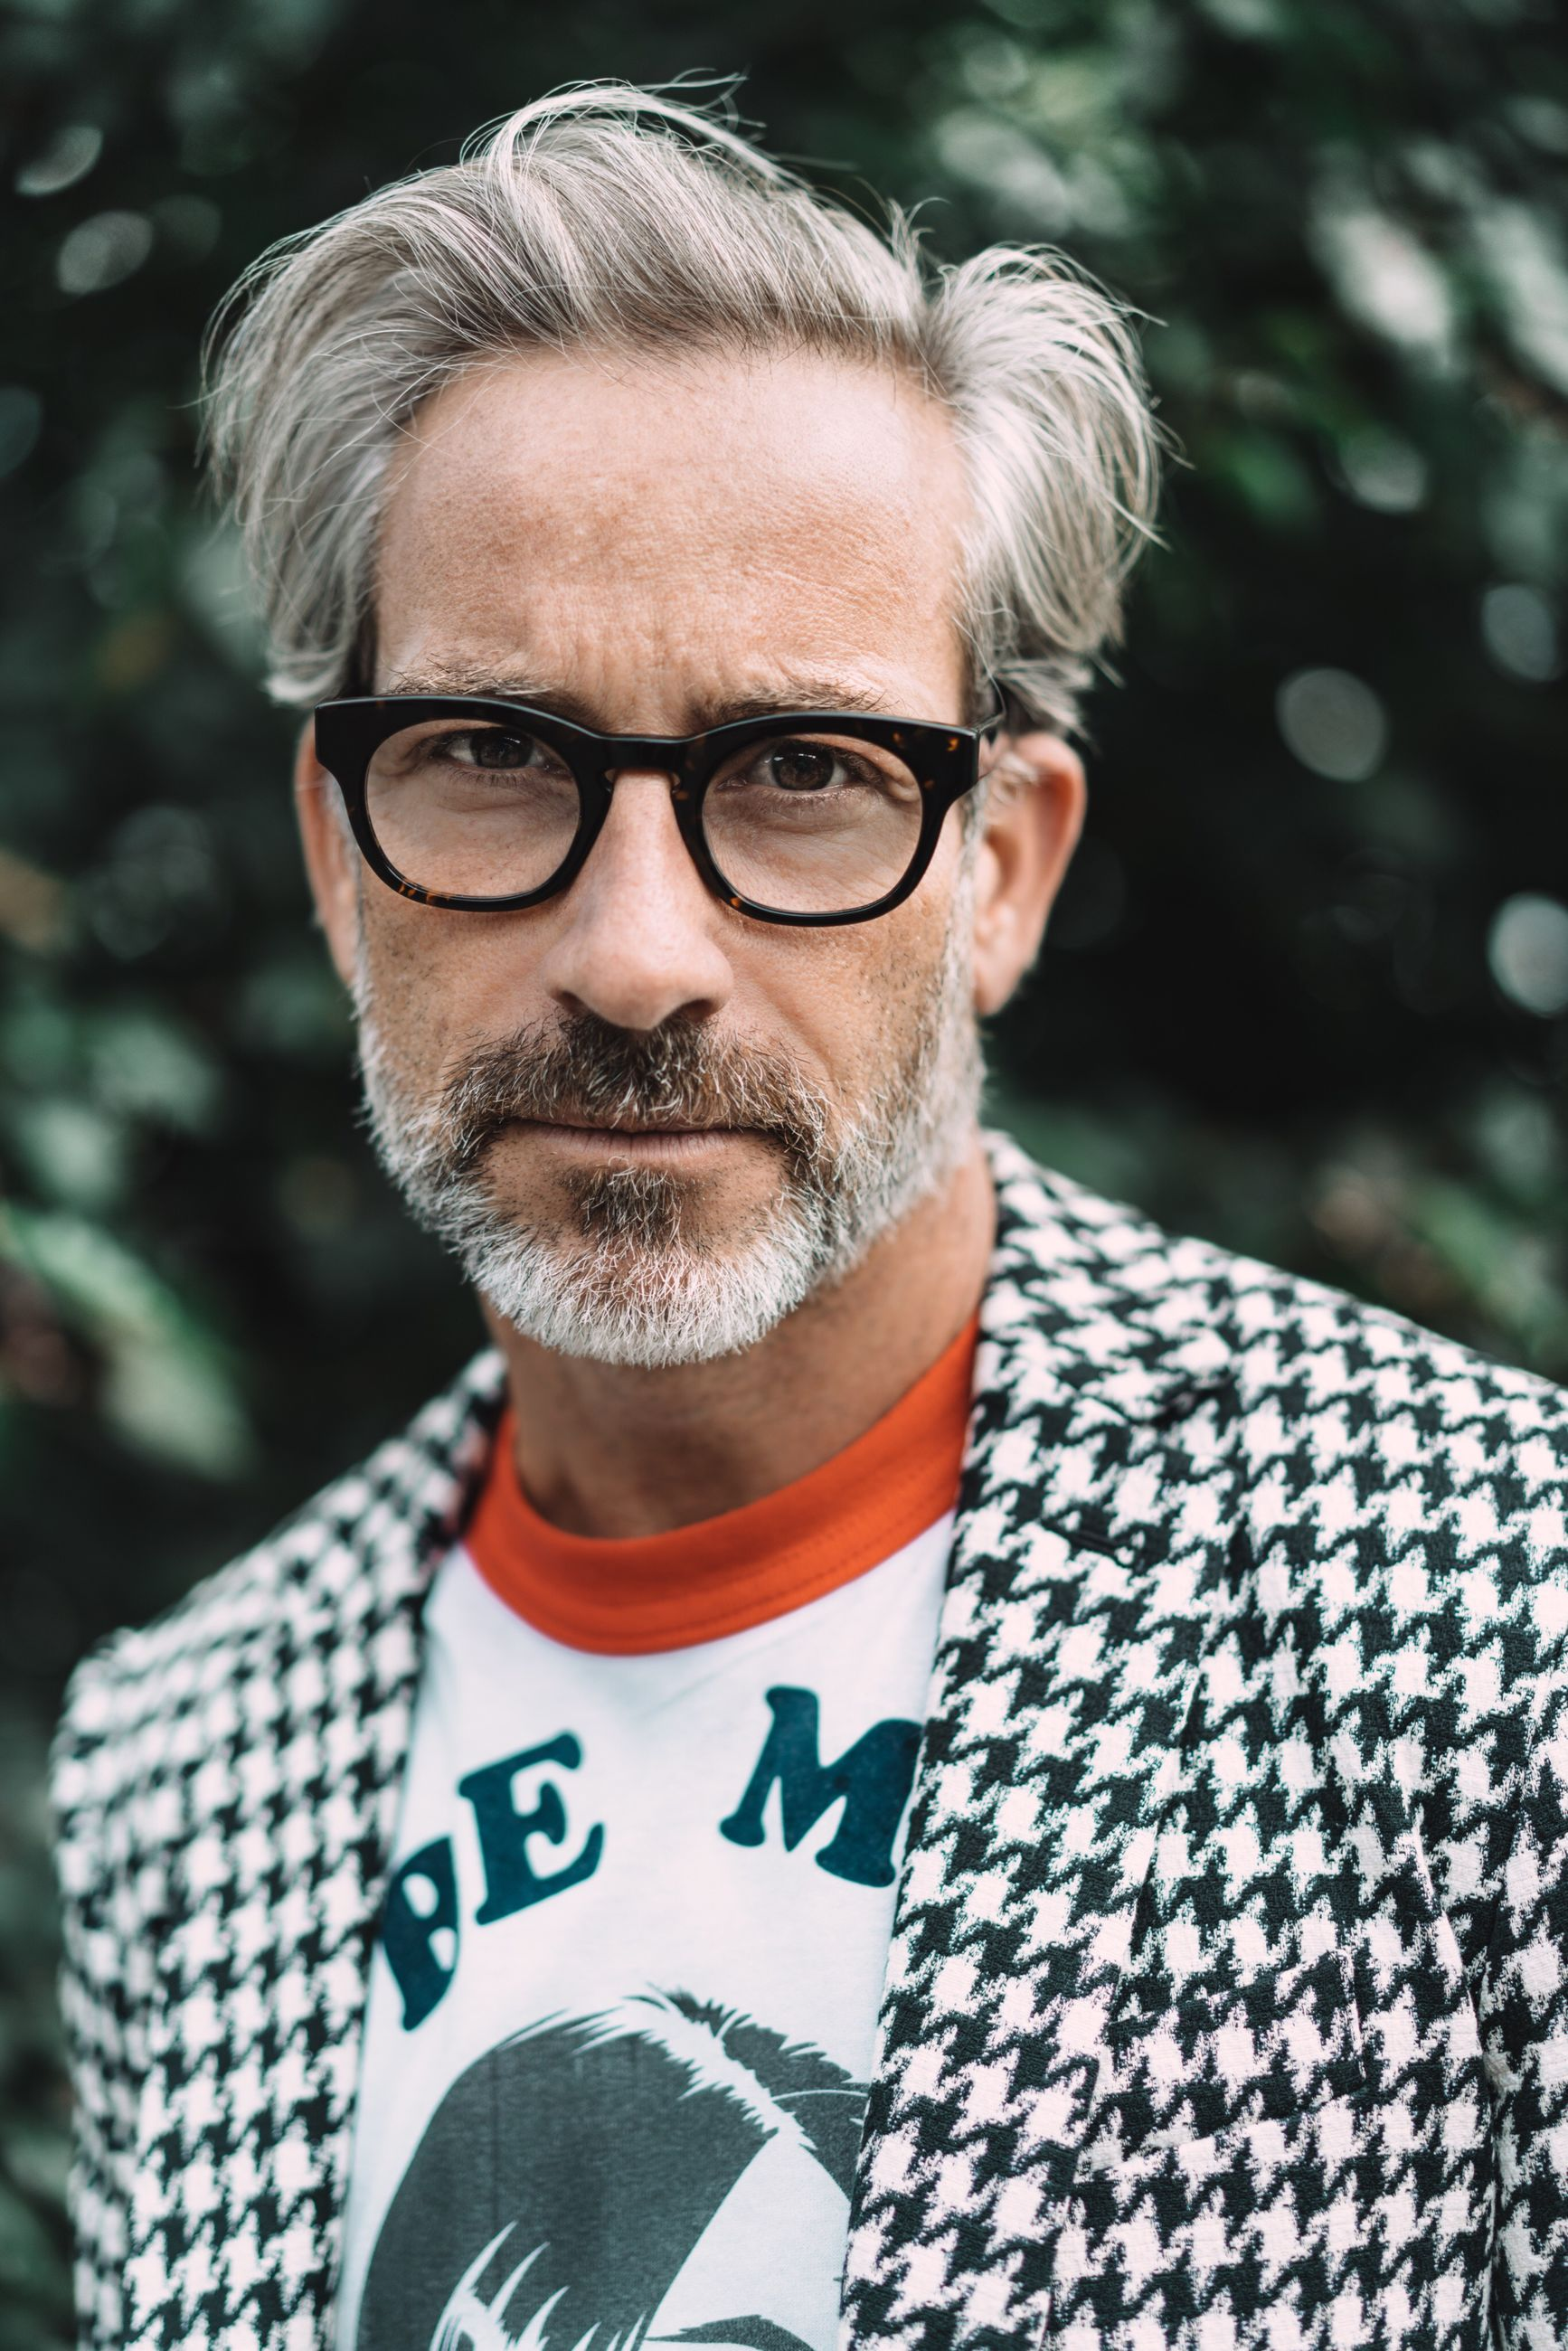 eyeglasses, real people, beard, front view, casual clothing, focus on foreground, mature adult, looking at camera, mature men, portrait, lifestyles, one person, outdoors, senior adult, day, leisure activity, gray hair, close-up, young adult